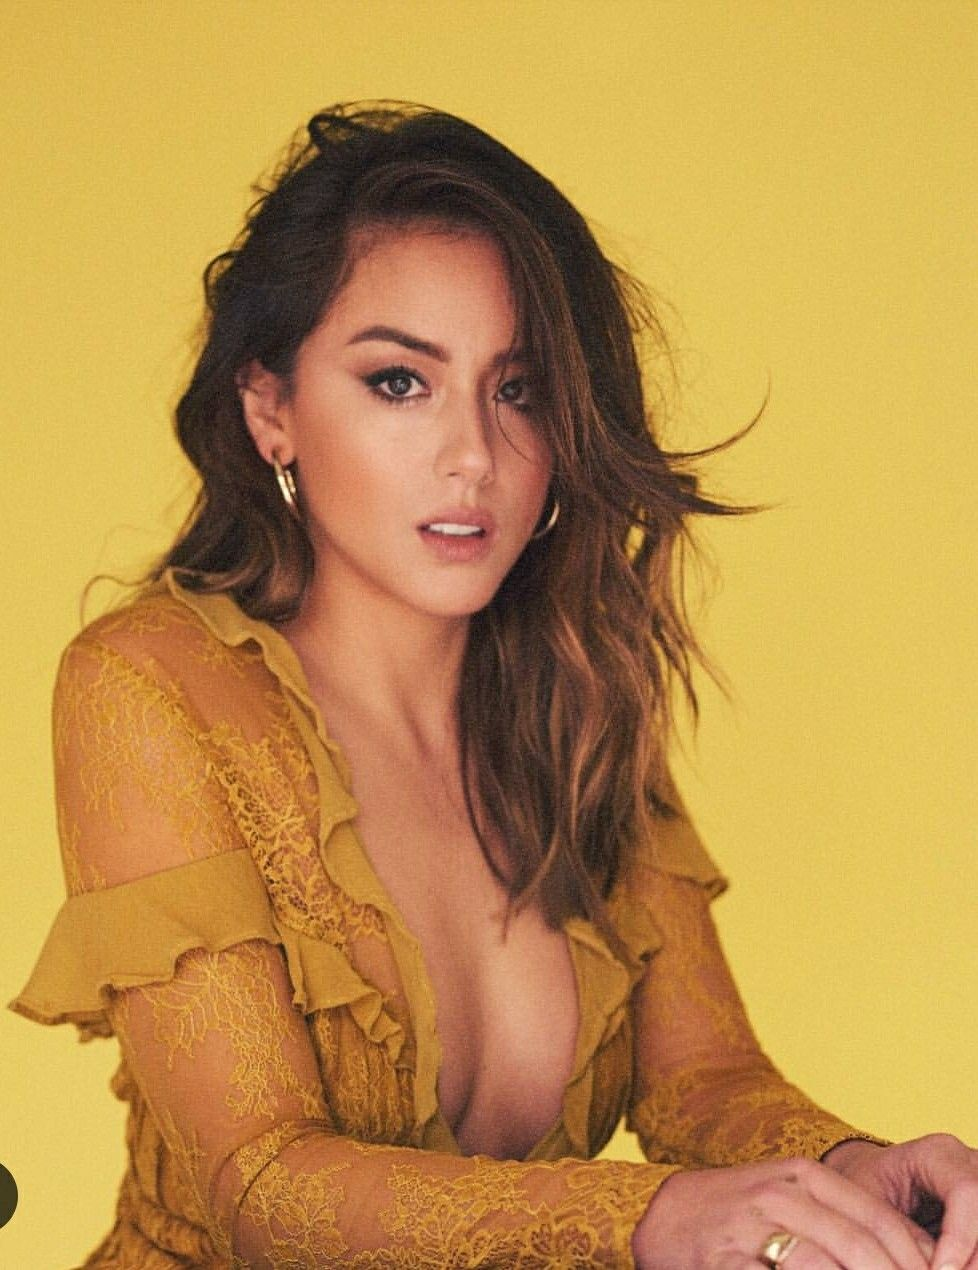 61 Hot Pictures Of Chloe Bennet Who Is Quake In Agents Of S H I E L D Best Of Comic Books